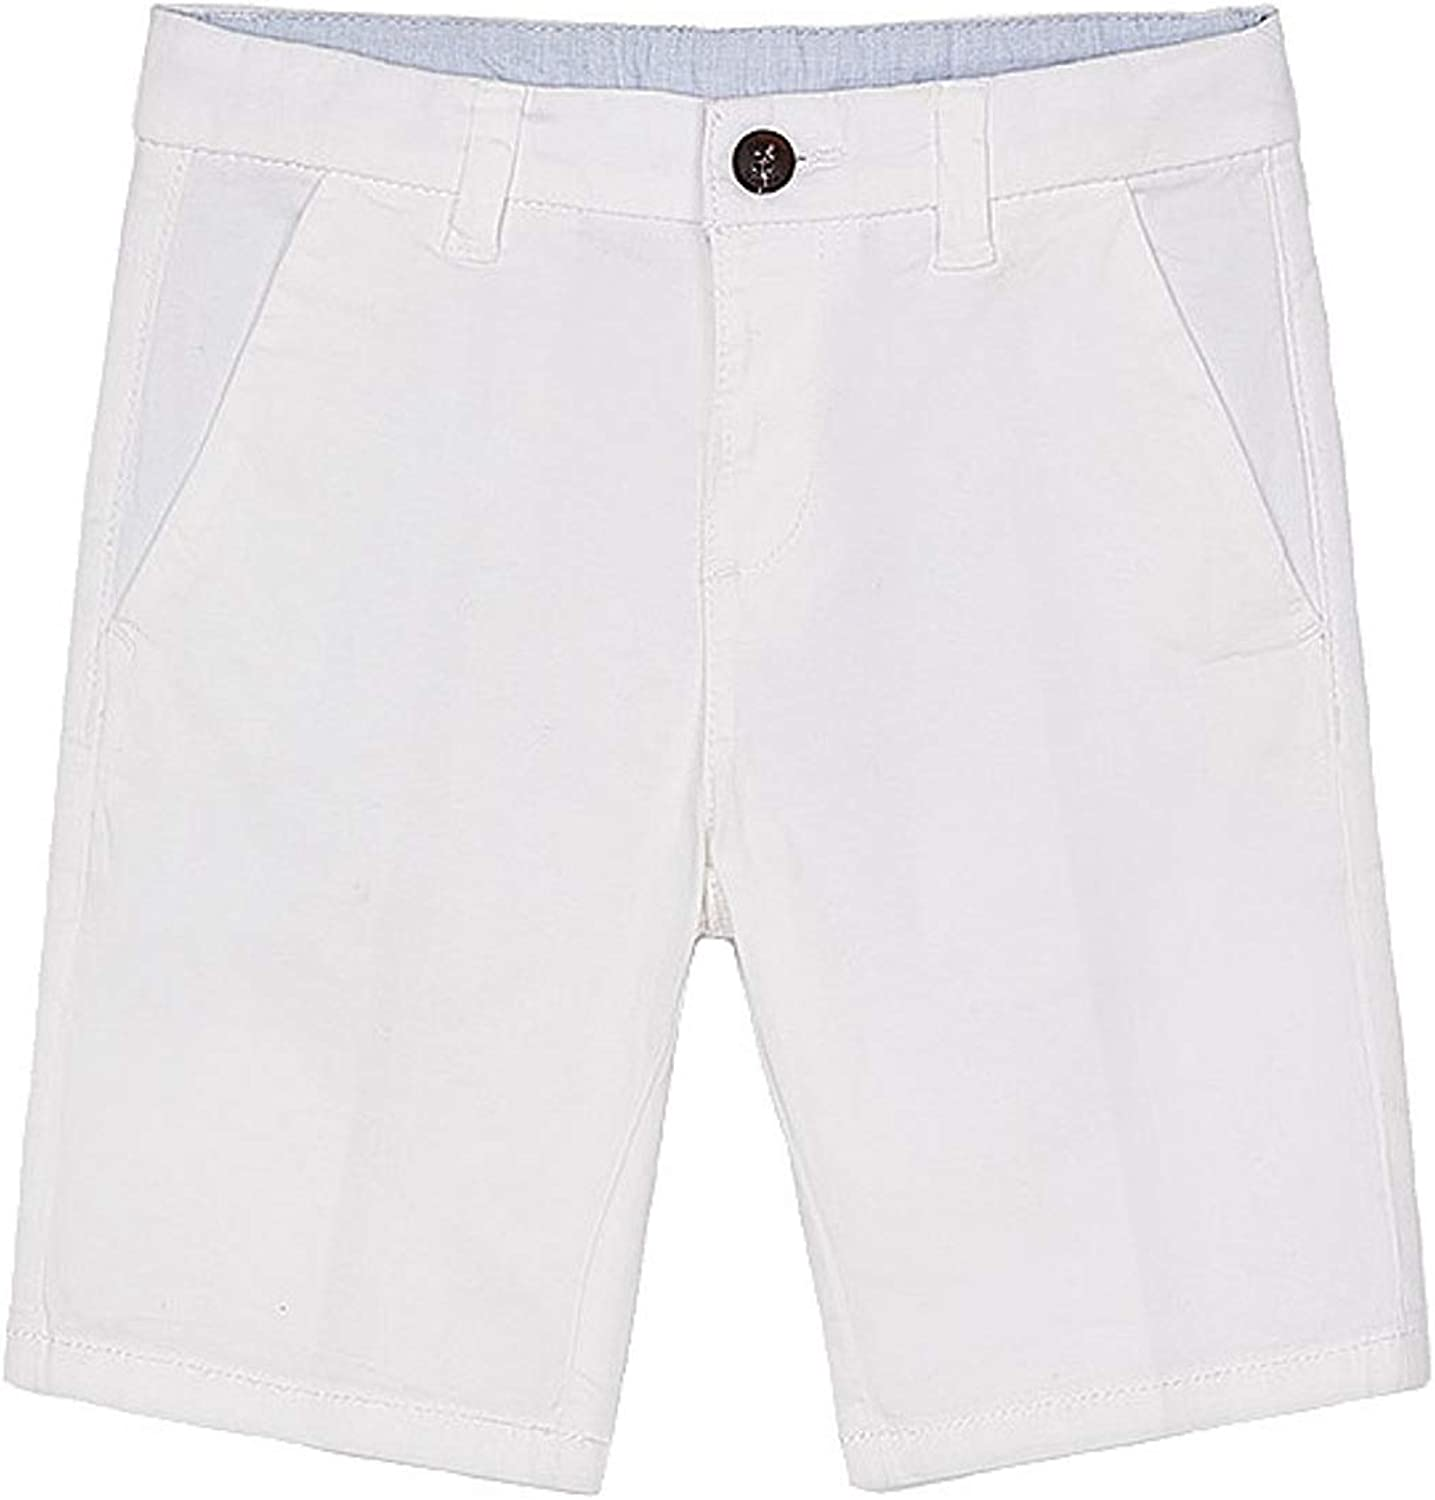 Mayoral - Basic Twill 35% OFF Chino Shorts White Max 55% OFF Boys for 0202